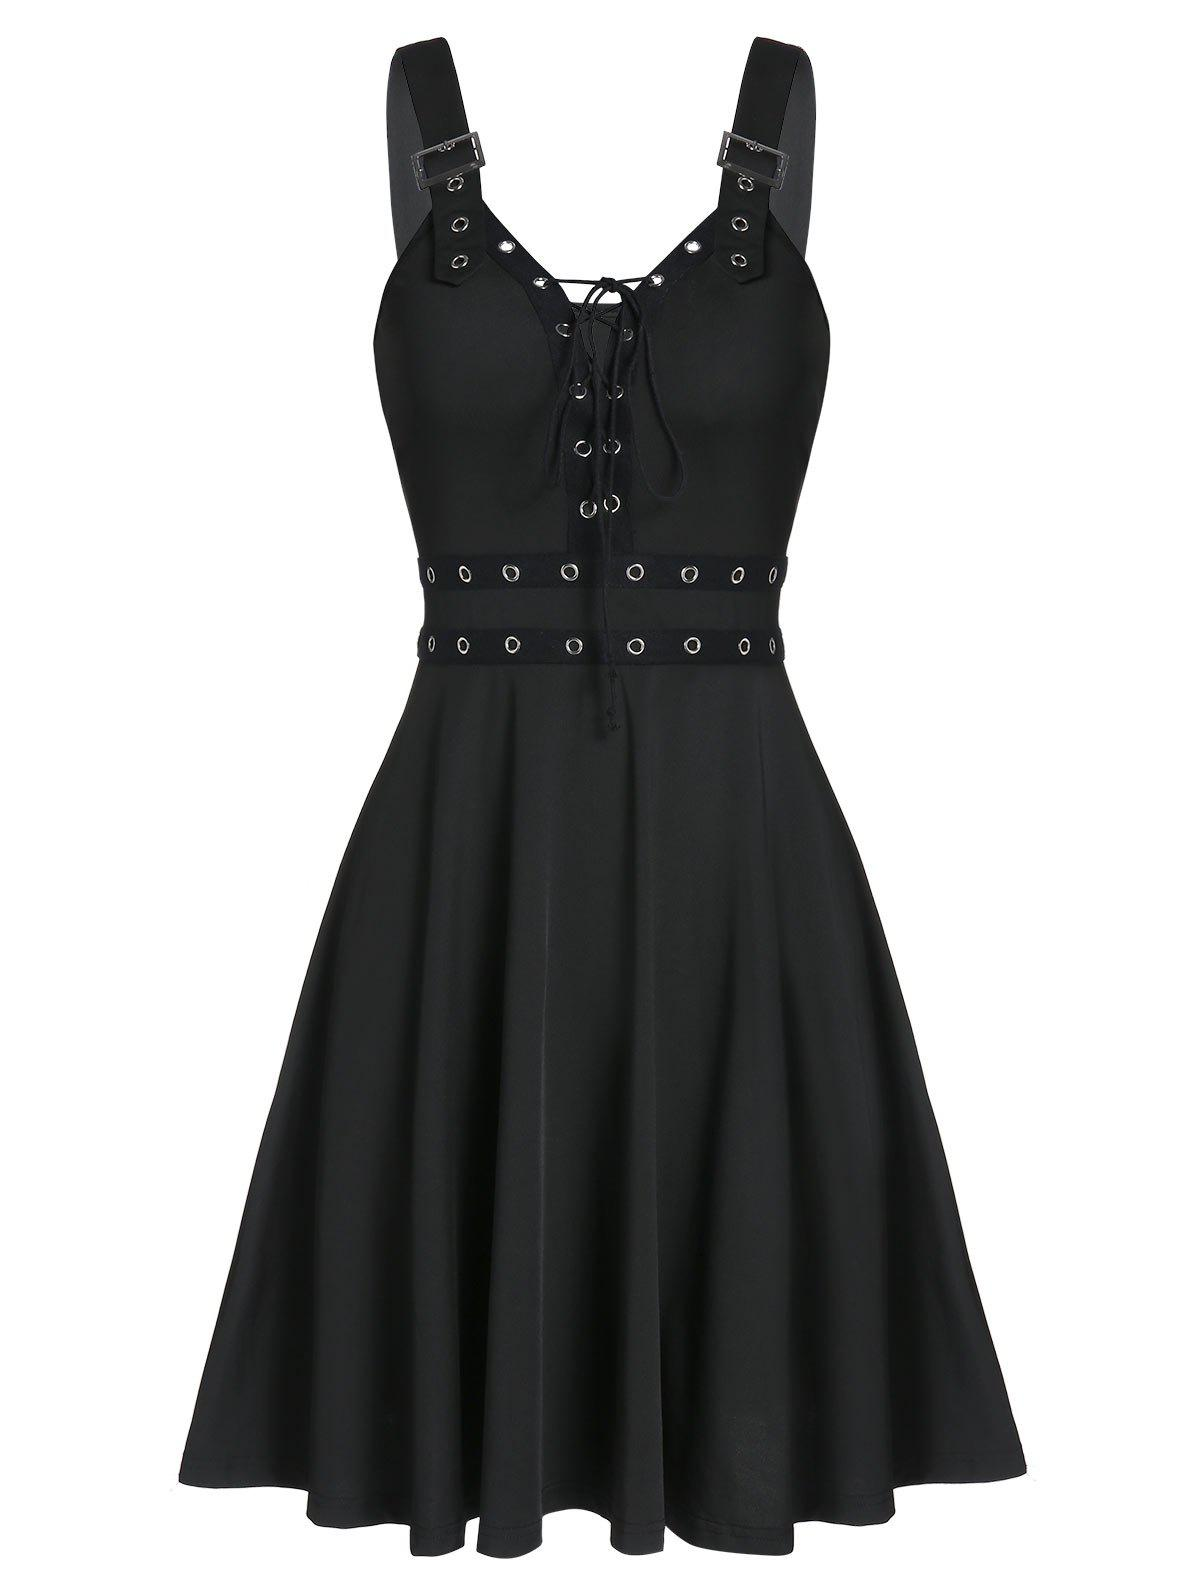 Lace Up Solid Fit And Flare Gothic Dress - BLACK 2XL